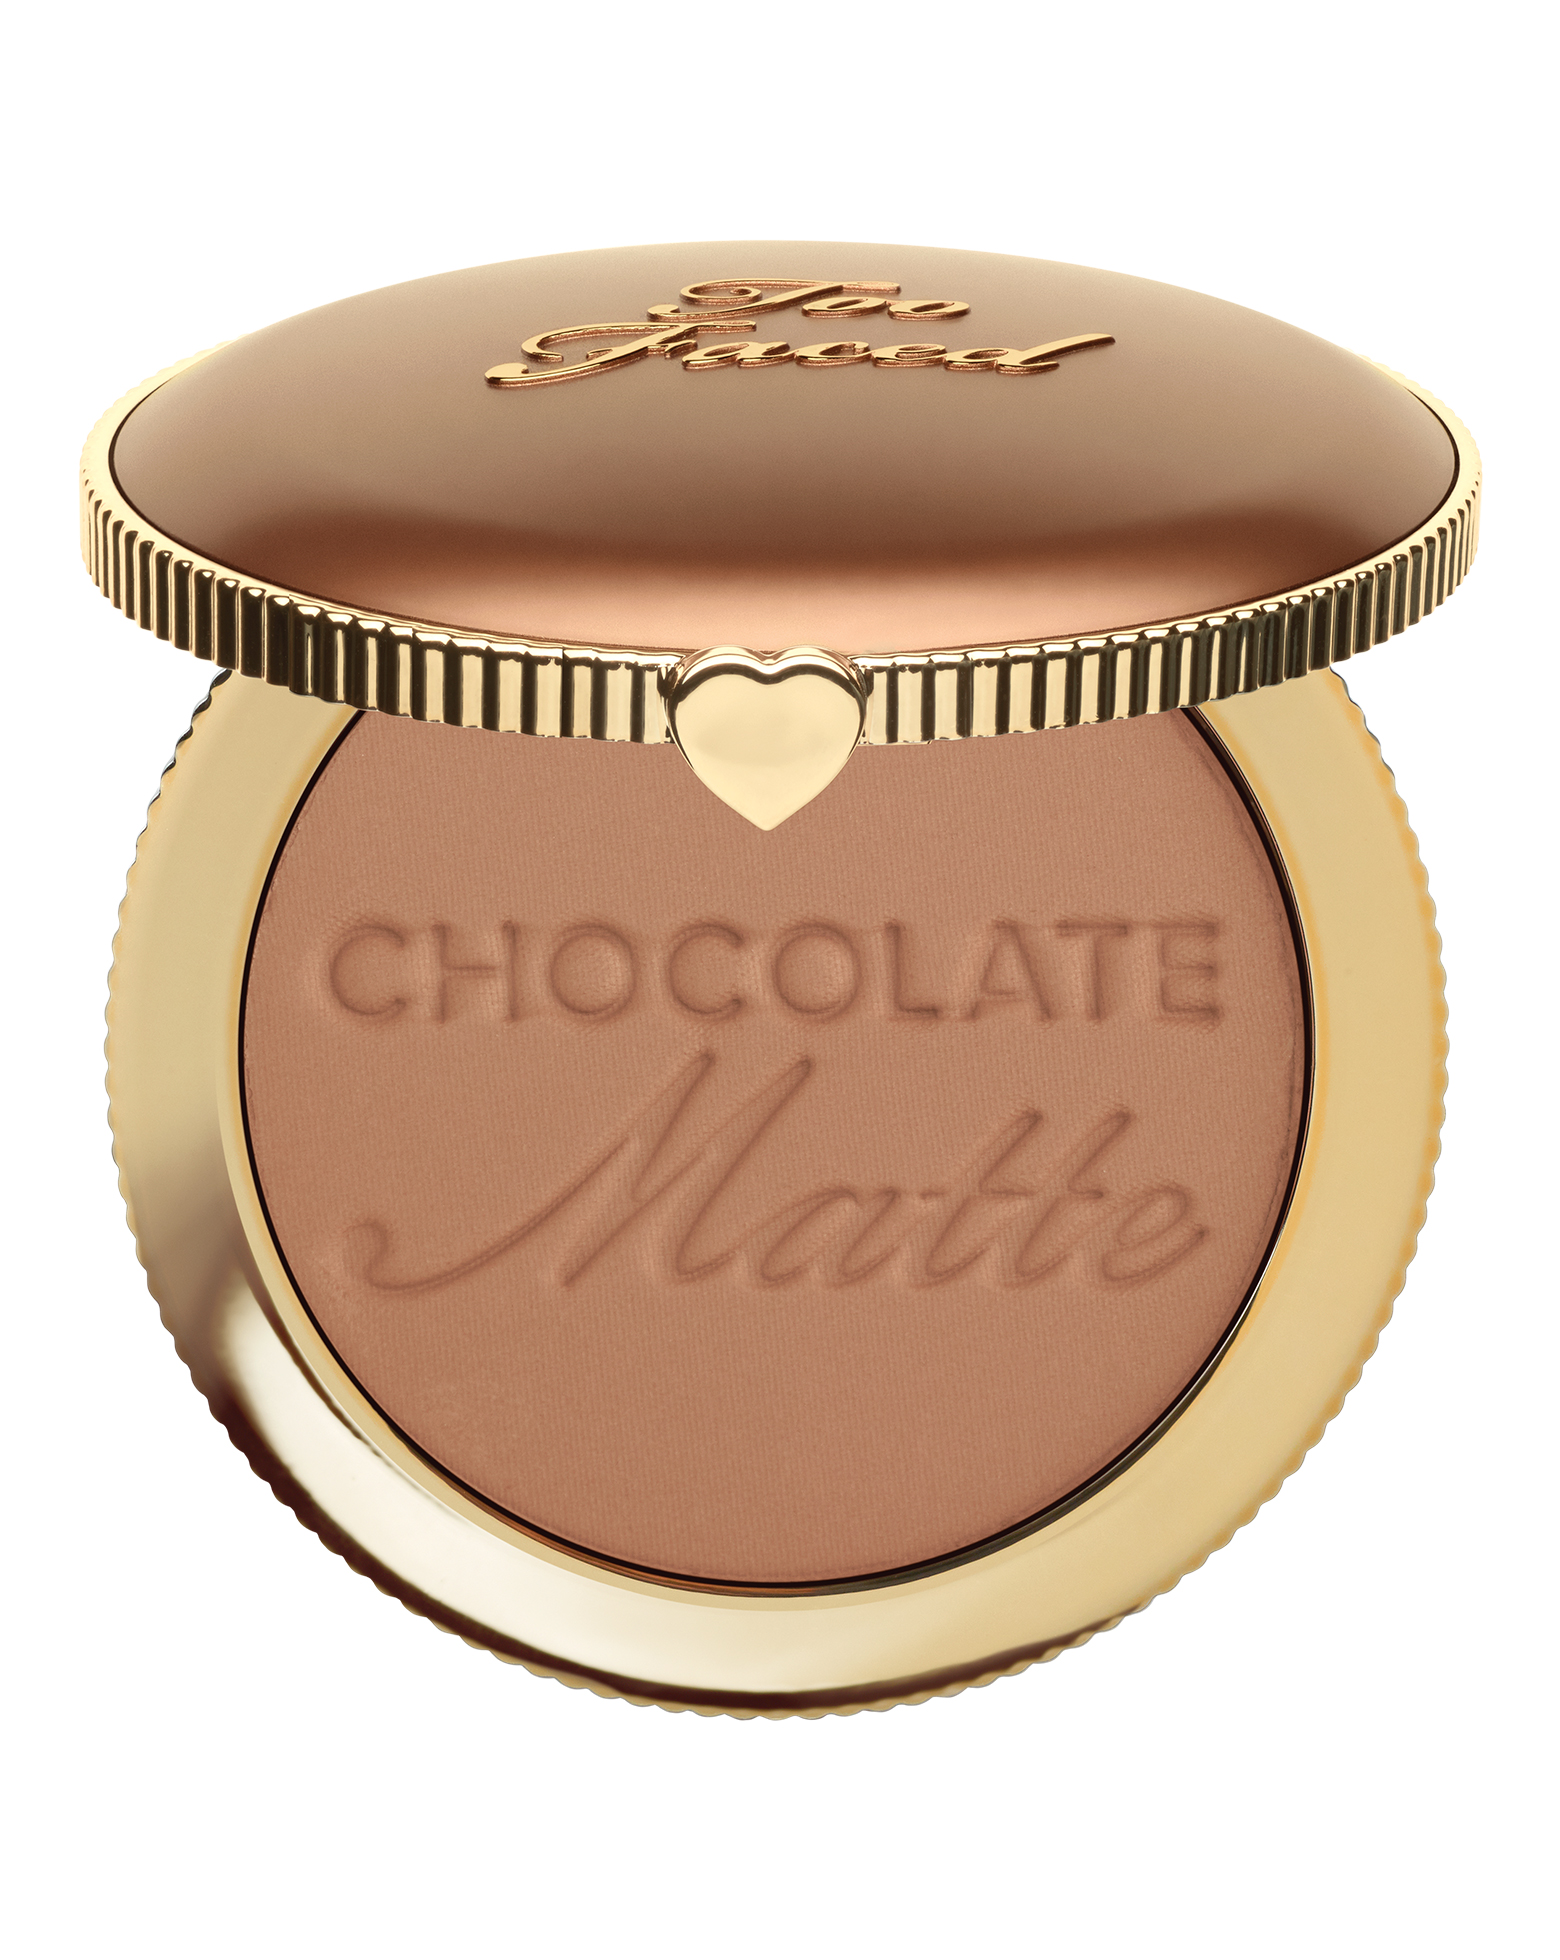 Chocolate Soleil Matte Bronzer by Too Faced #2